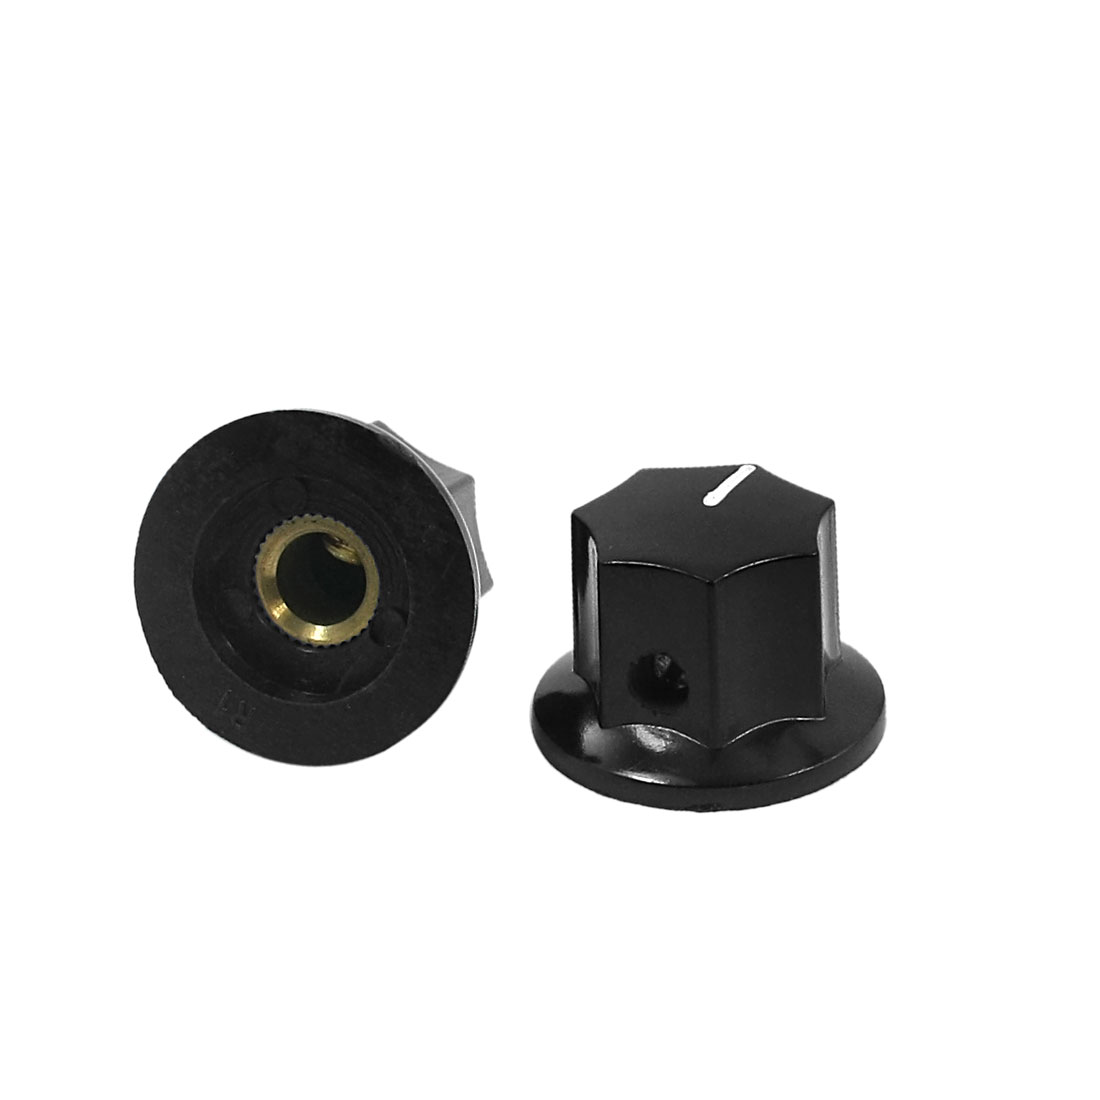 2pcs Plastic 6mm Shaft Dia Volume Knob Cap B-1 for Potentiometer Pot